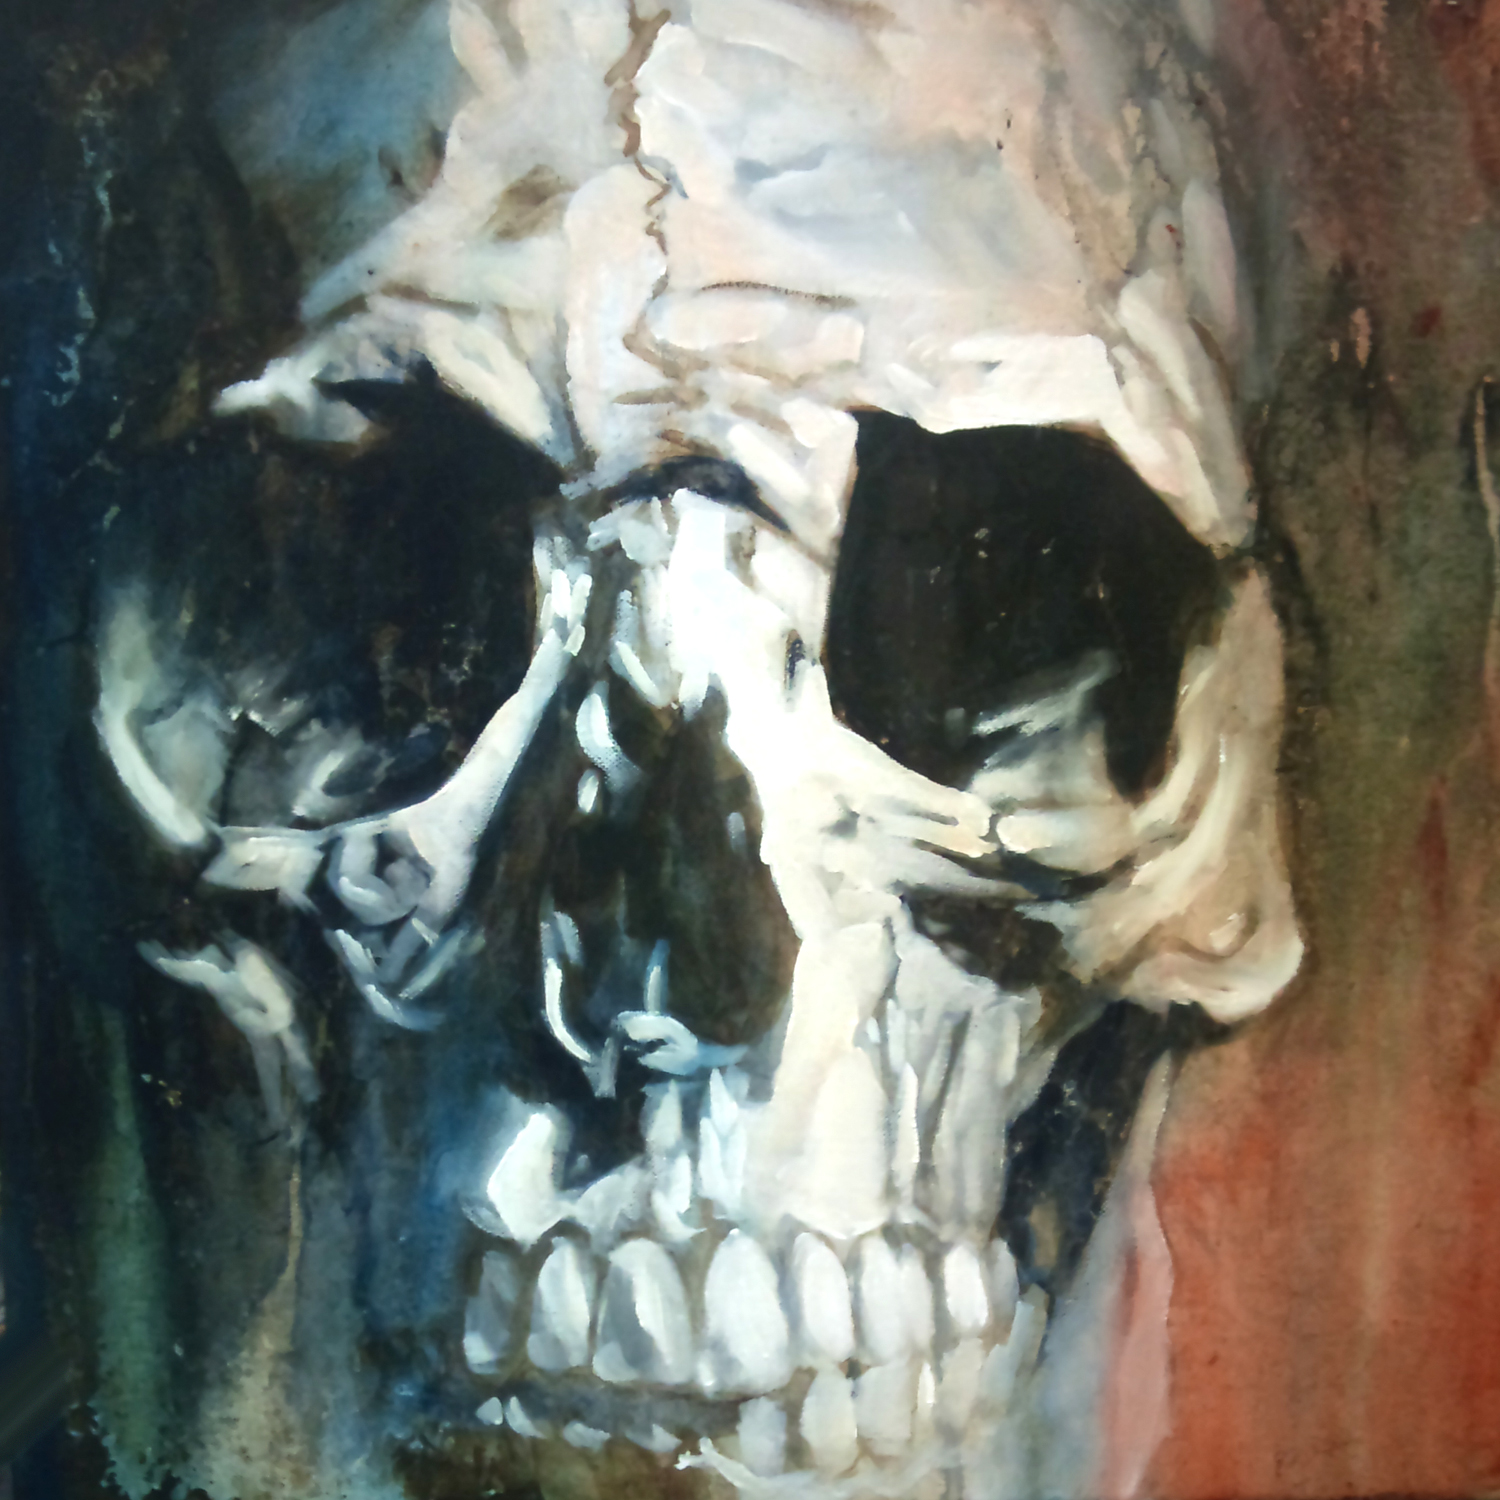 Skull IV (2) (Big Daddy's conflicted copy 2014-03-13).jpg